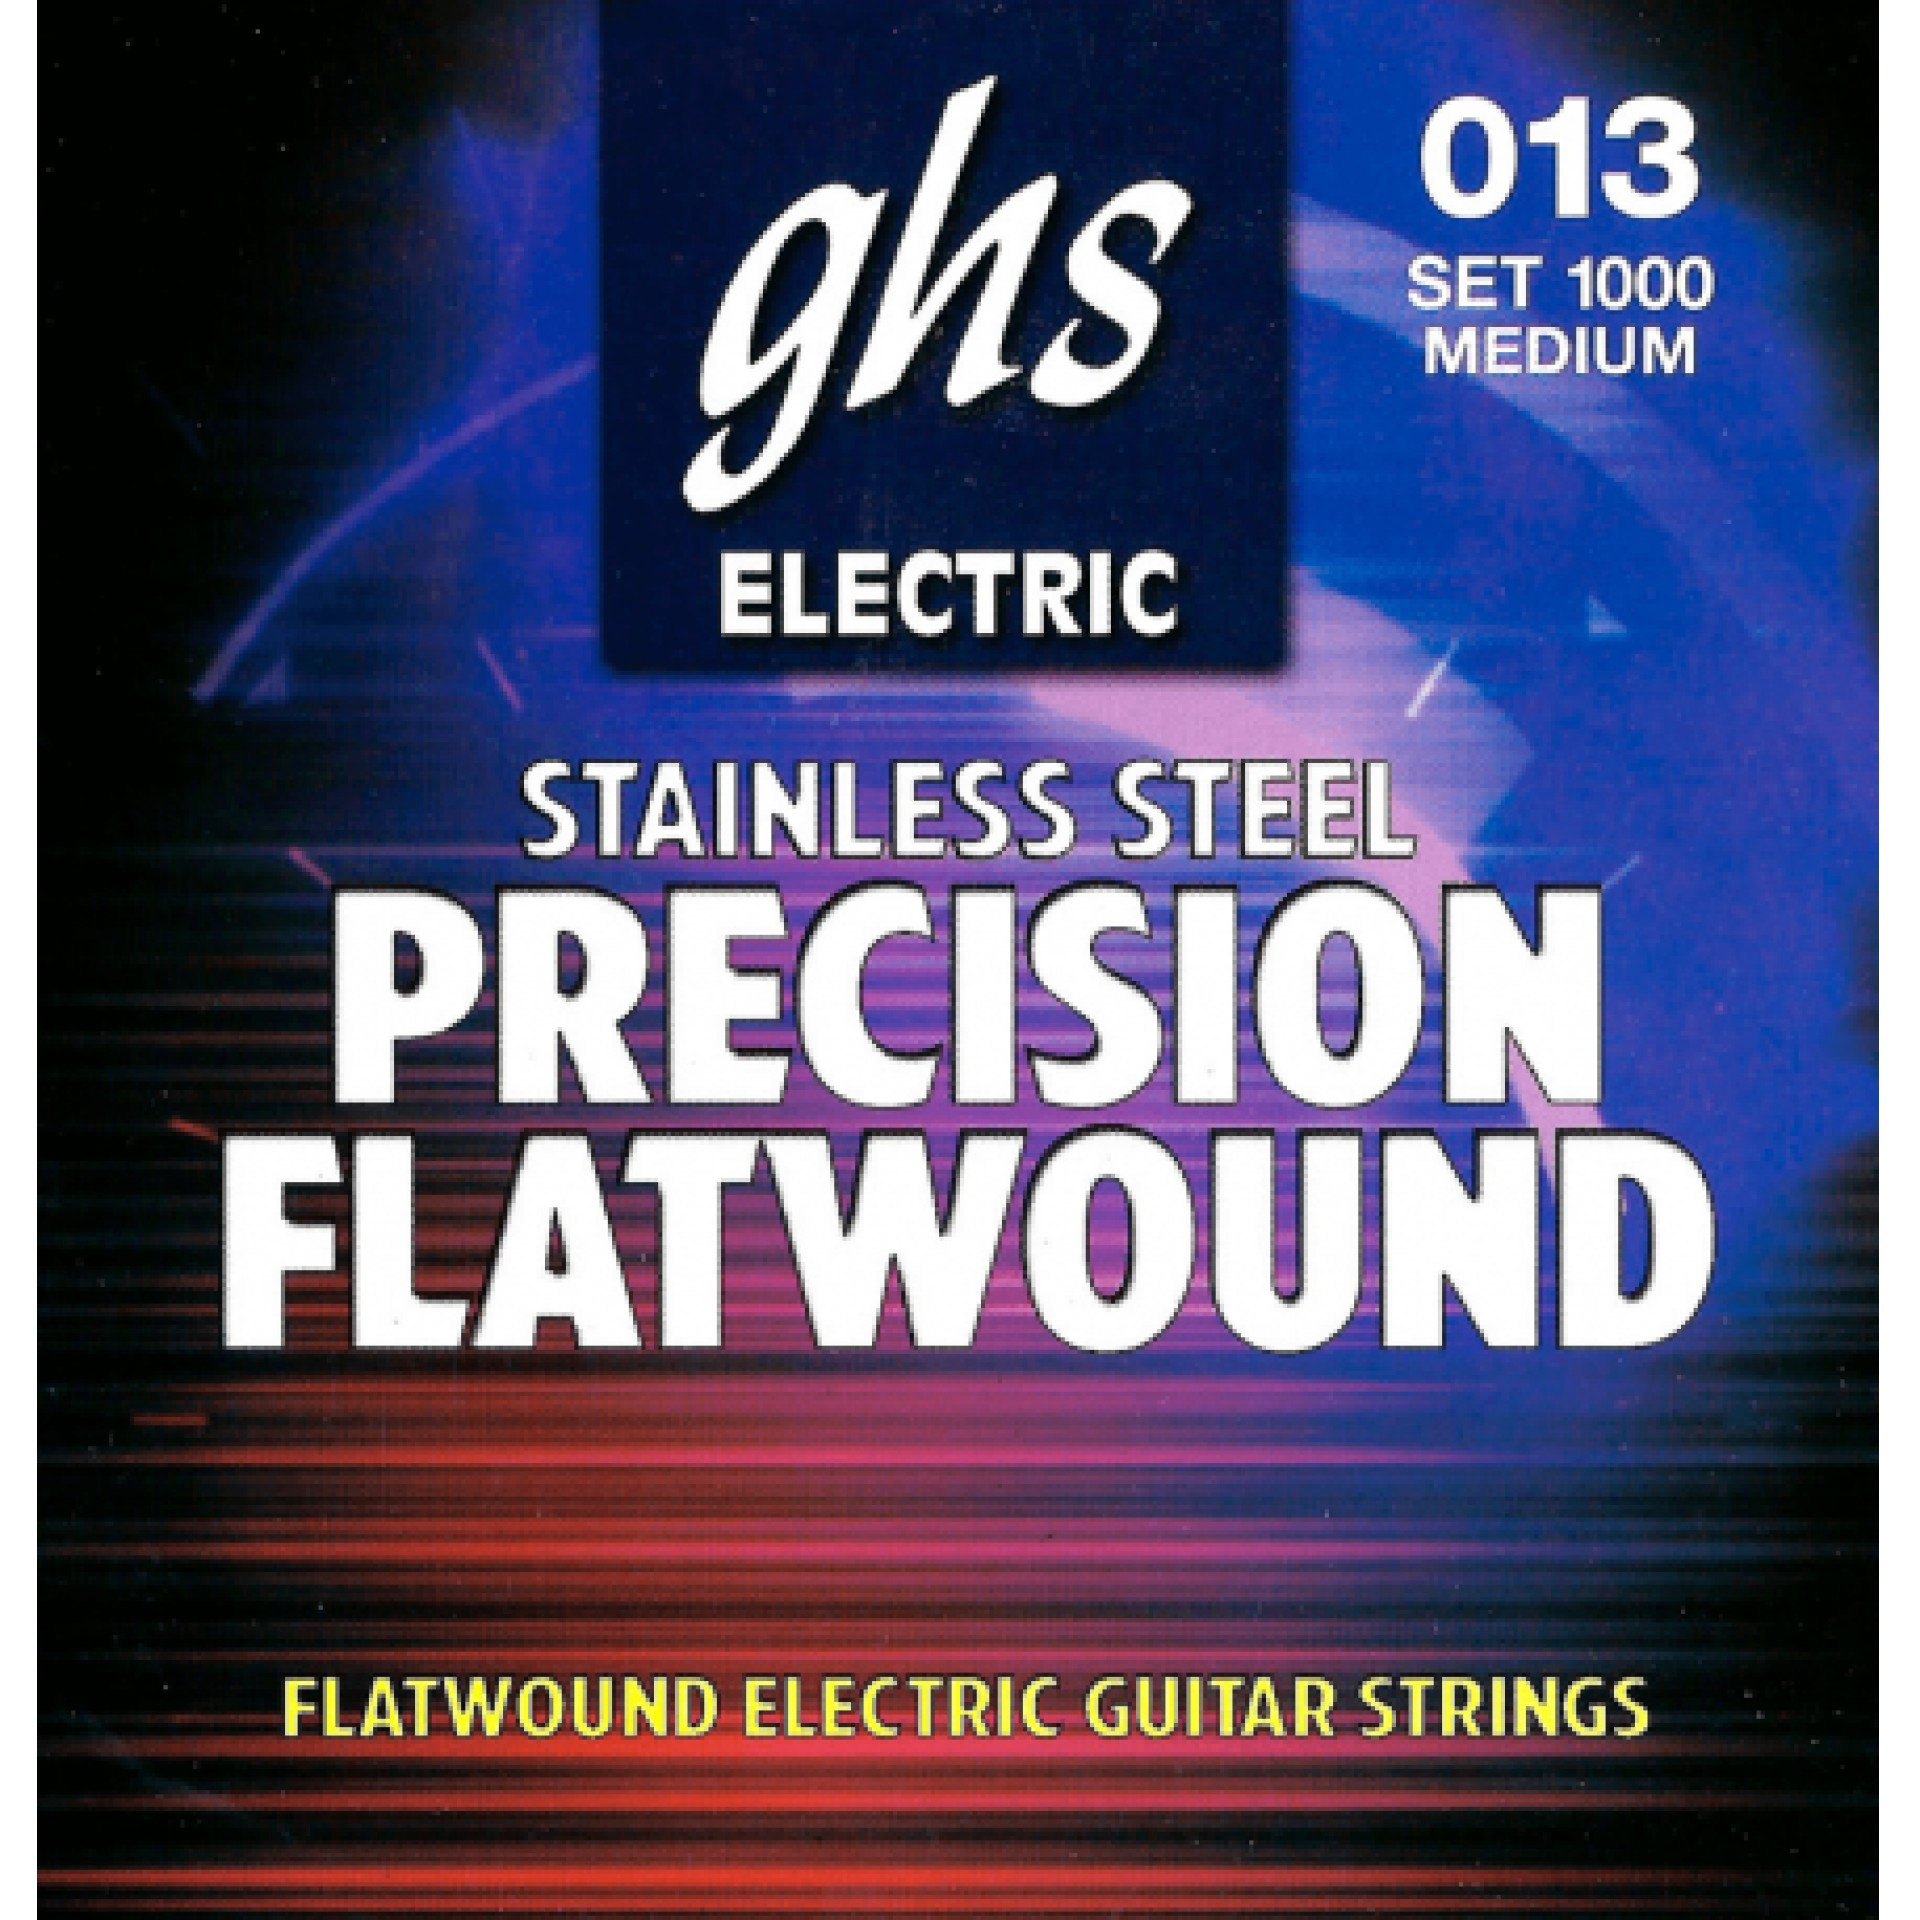 GHS 1000 Precision Flatwound Flat Wrap Stainless Steel